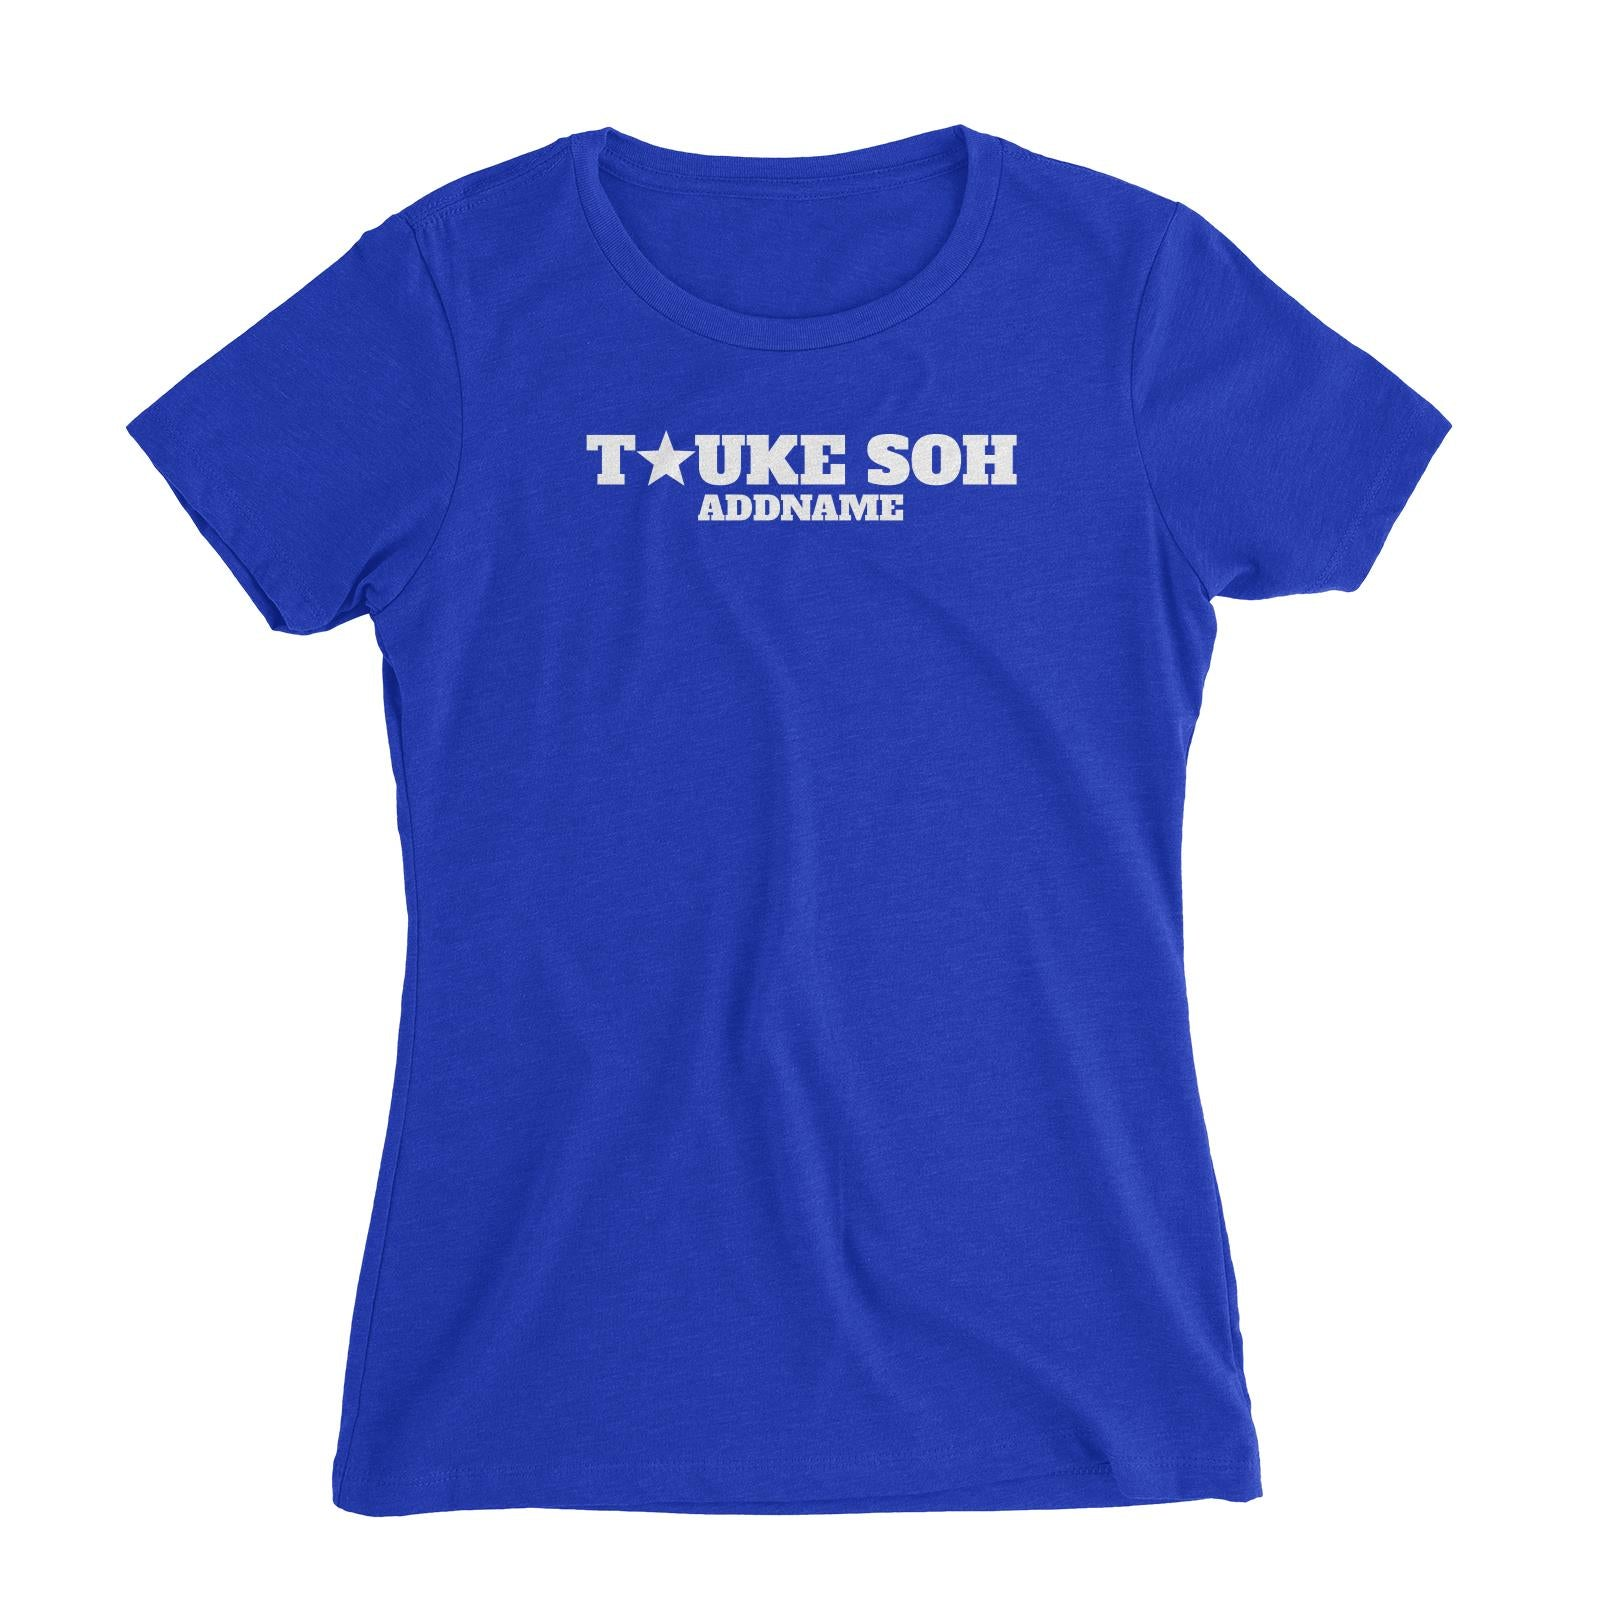 Tauke Soh Star Women's Slim Fit T-Shirt